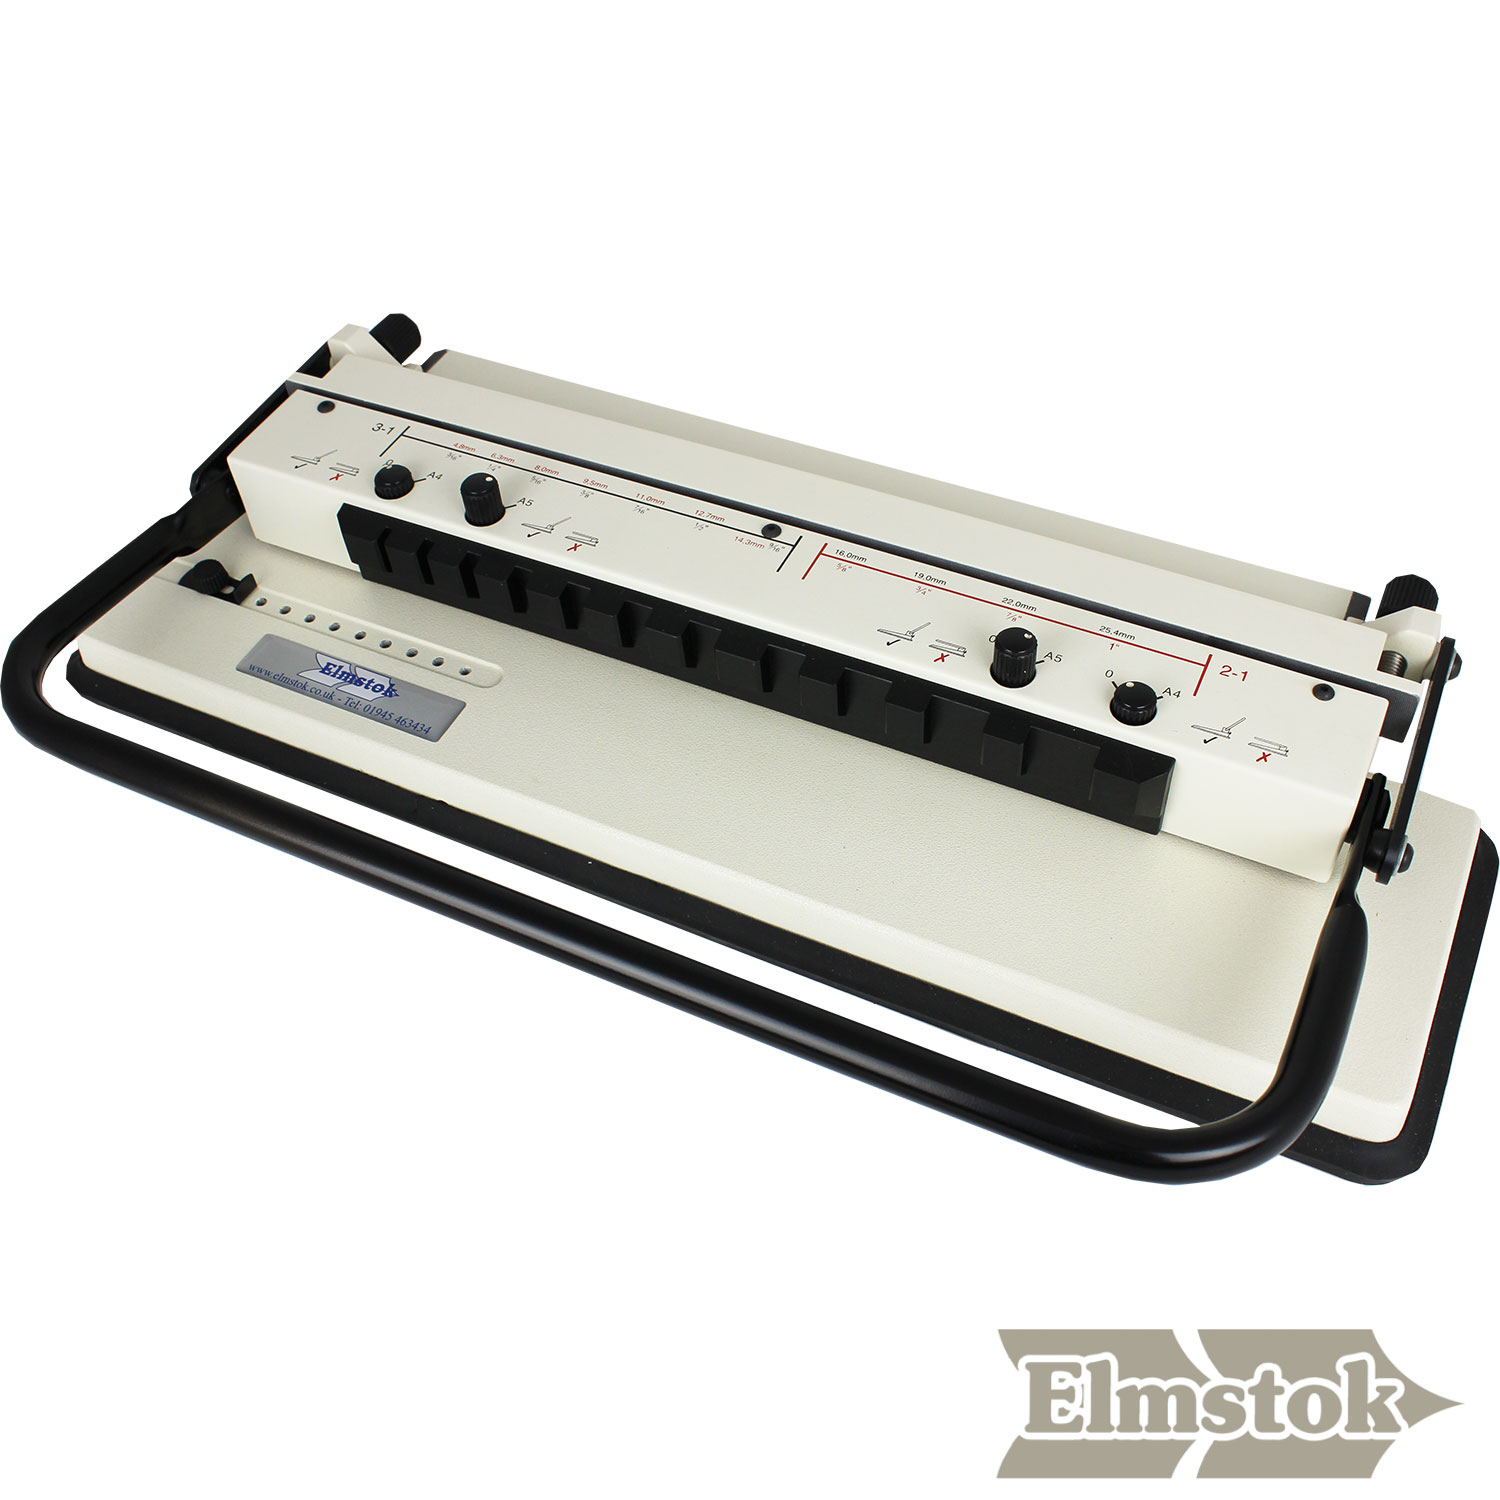 ELMPRO PB46-CAL A3/A4/A5 Calendar Wire Punch & Closer